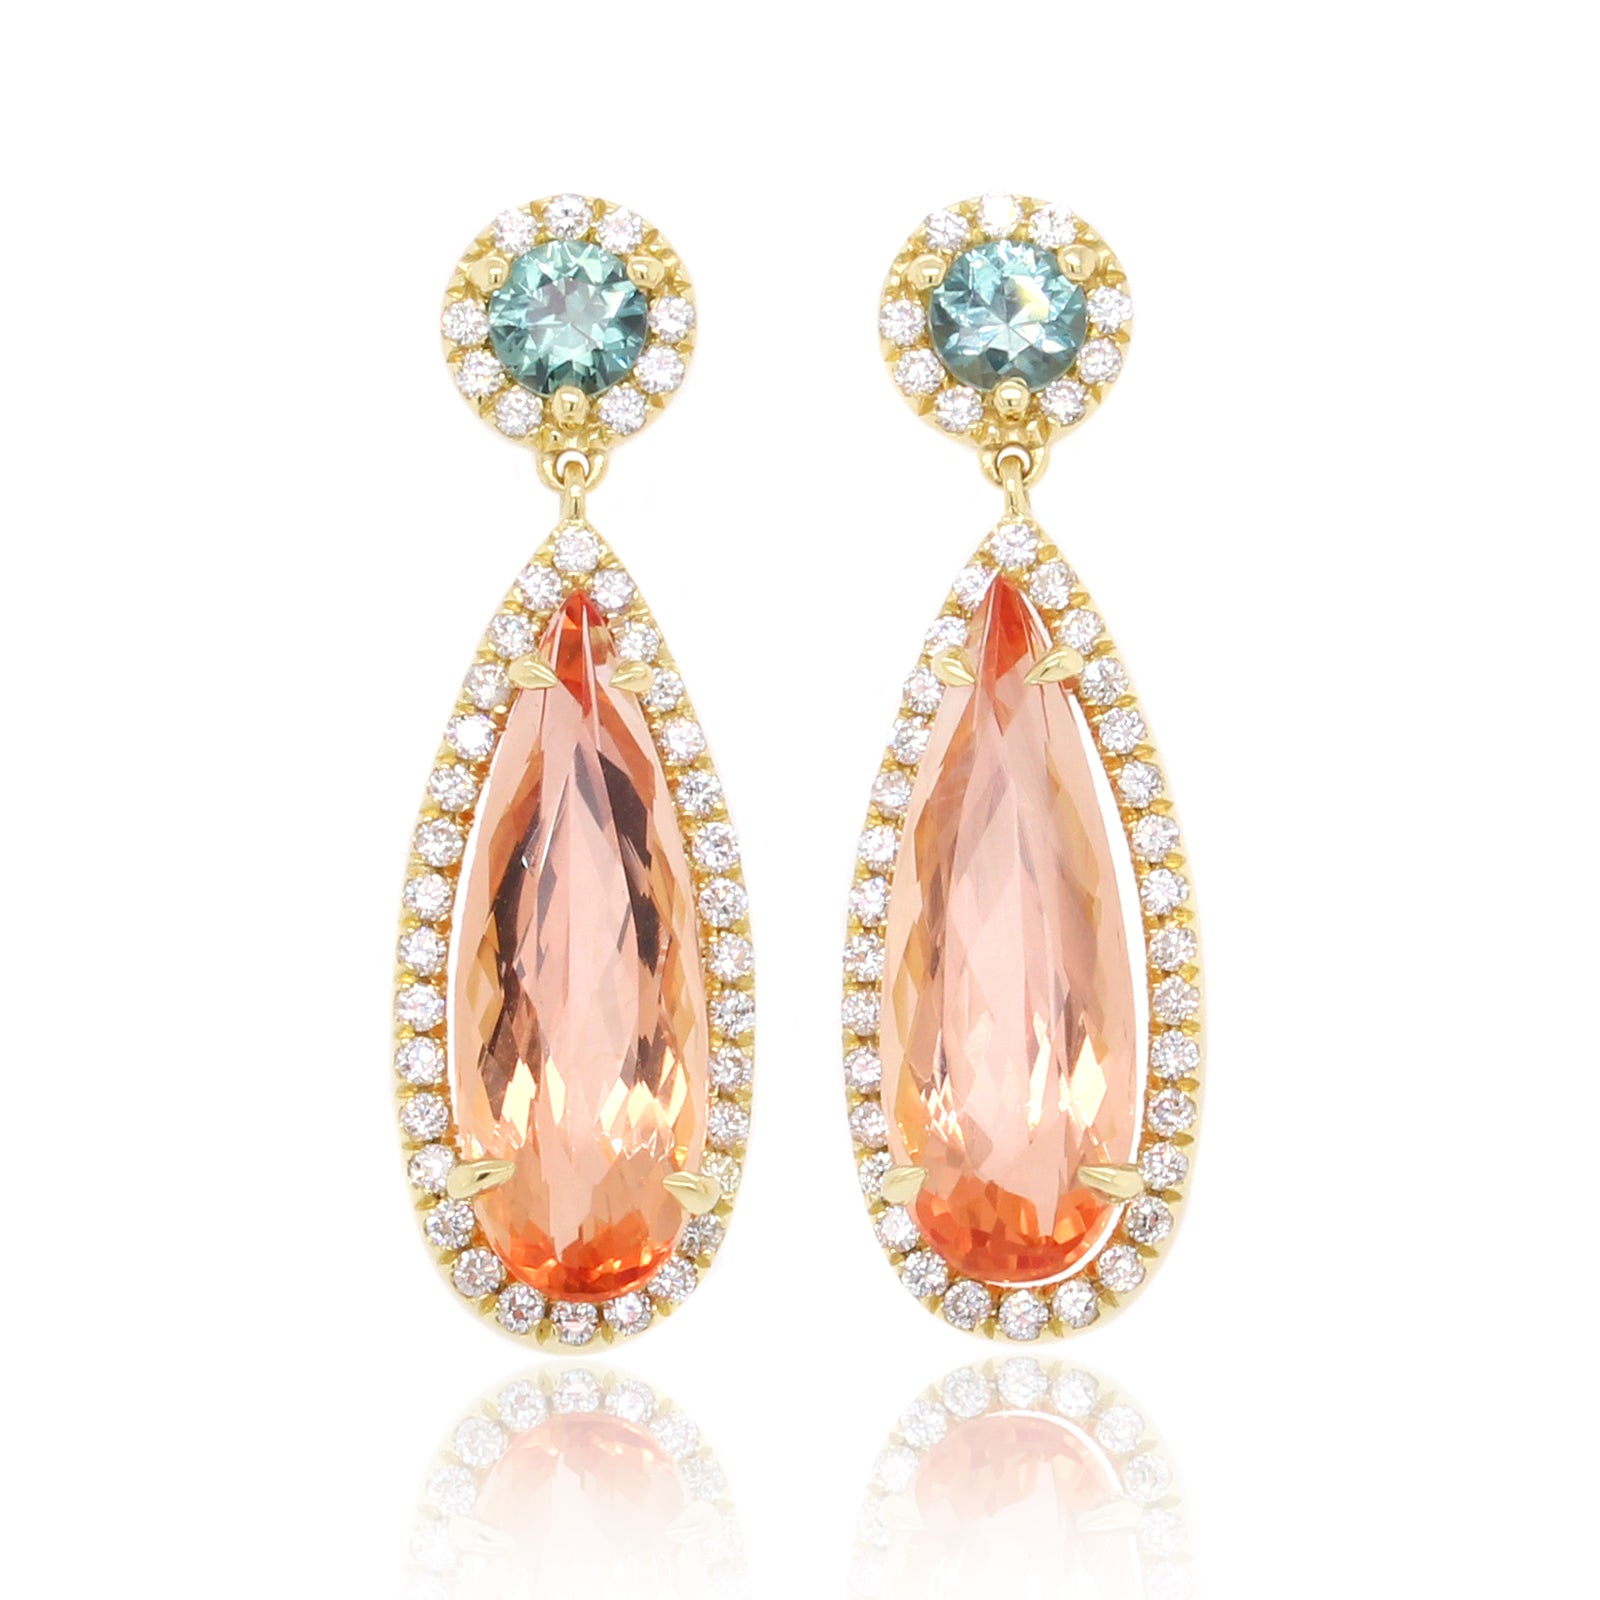 18K Yellow Gold Pear Topaz Earrings (One-Of-A-Kind Collection)